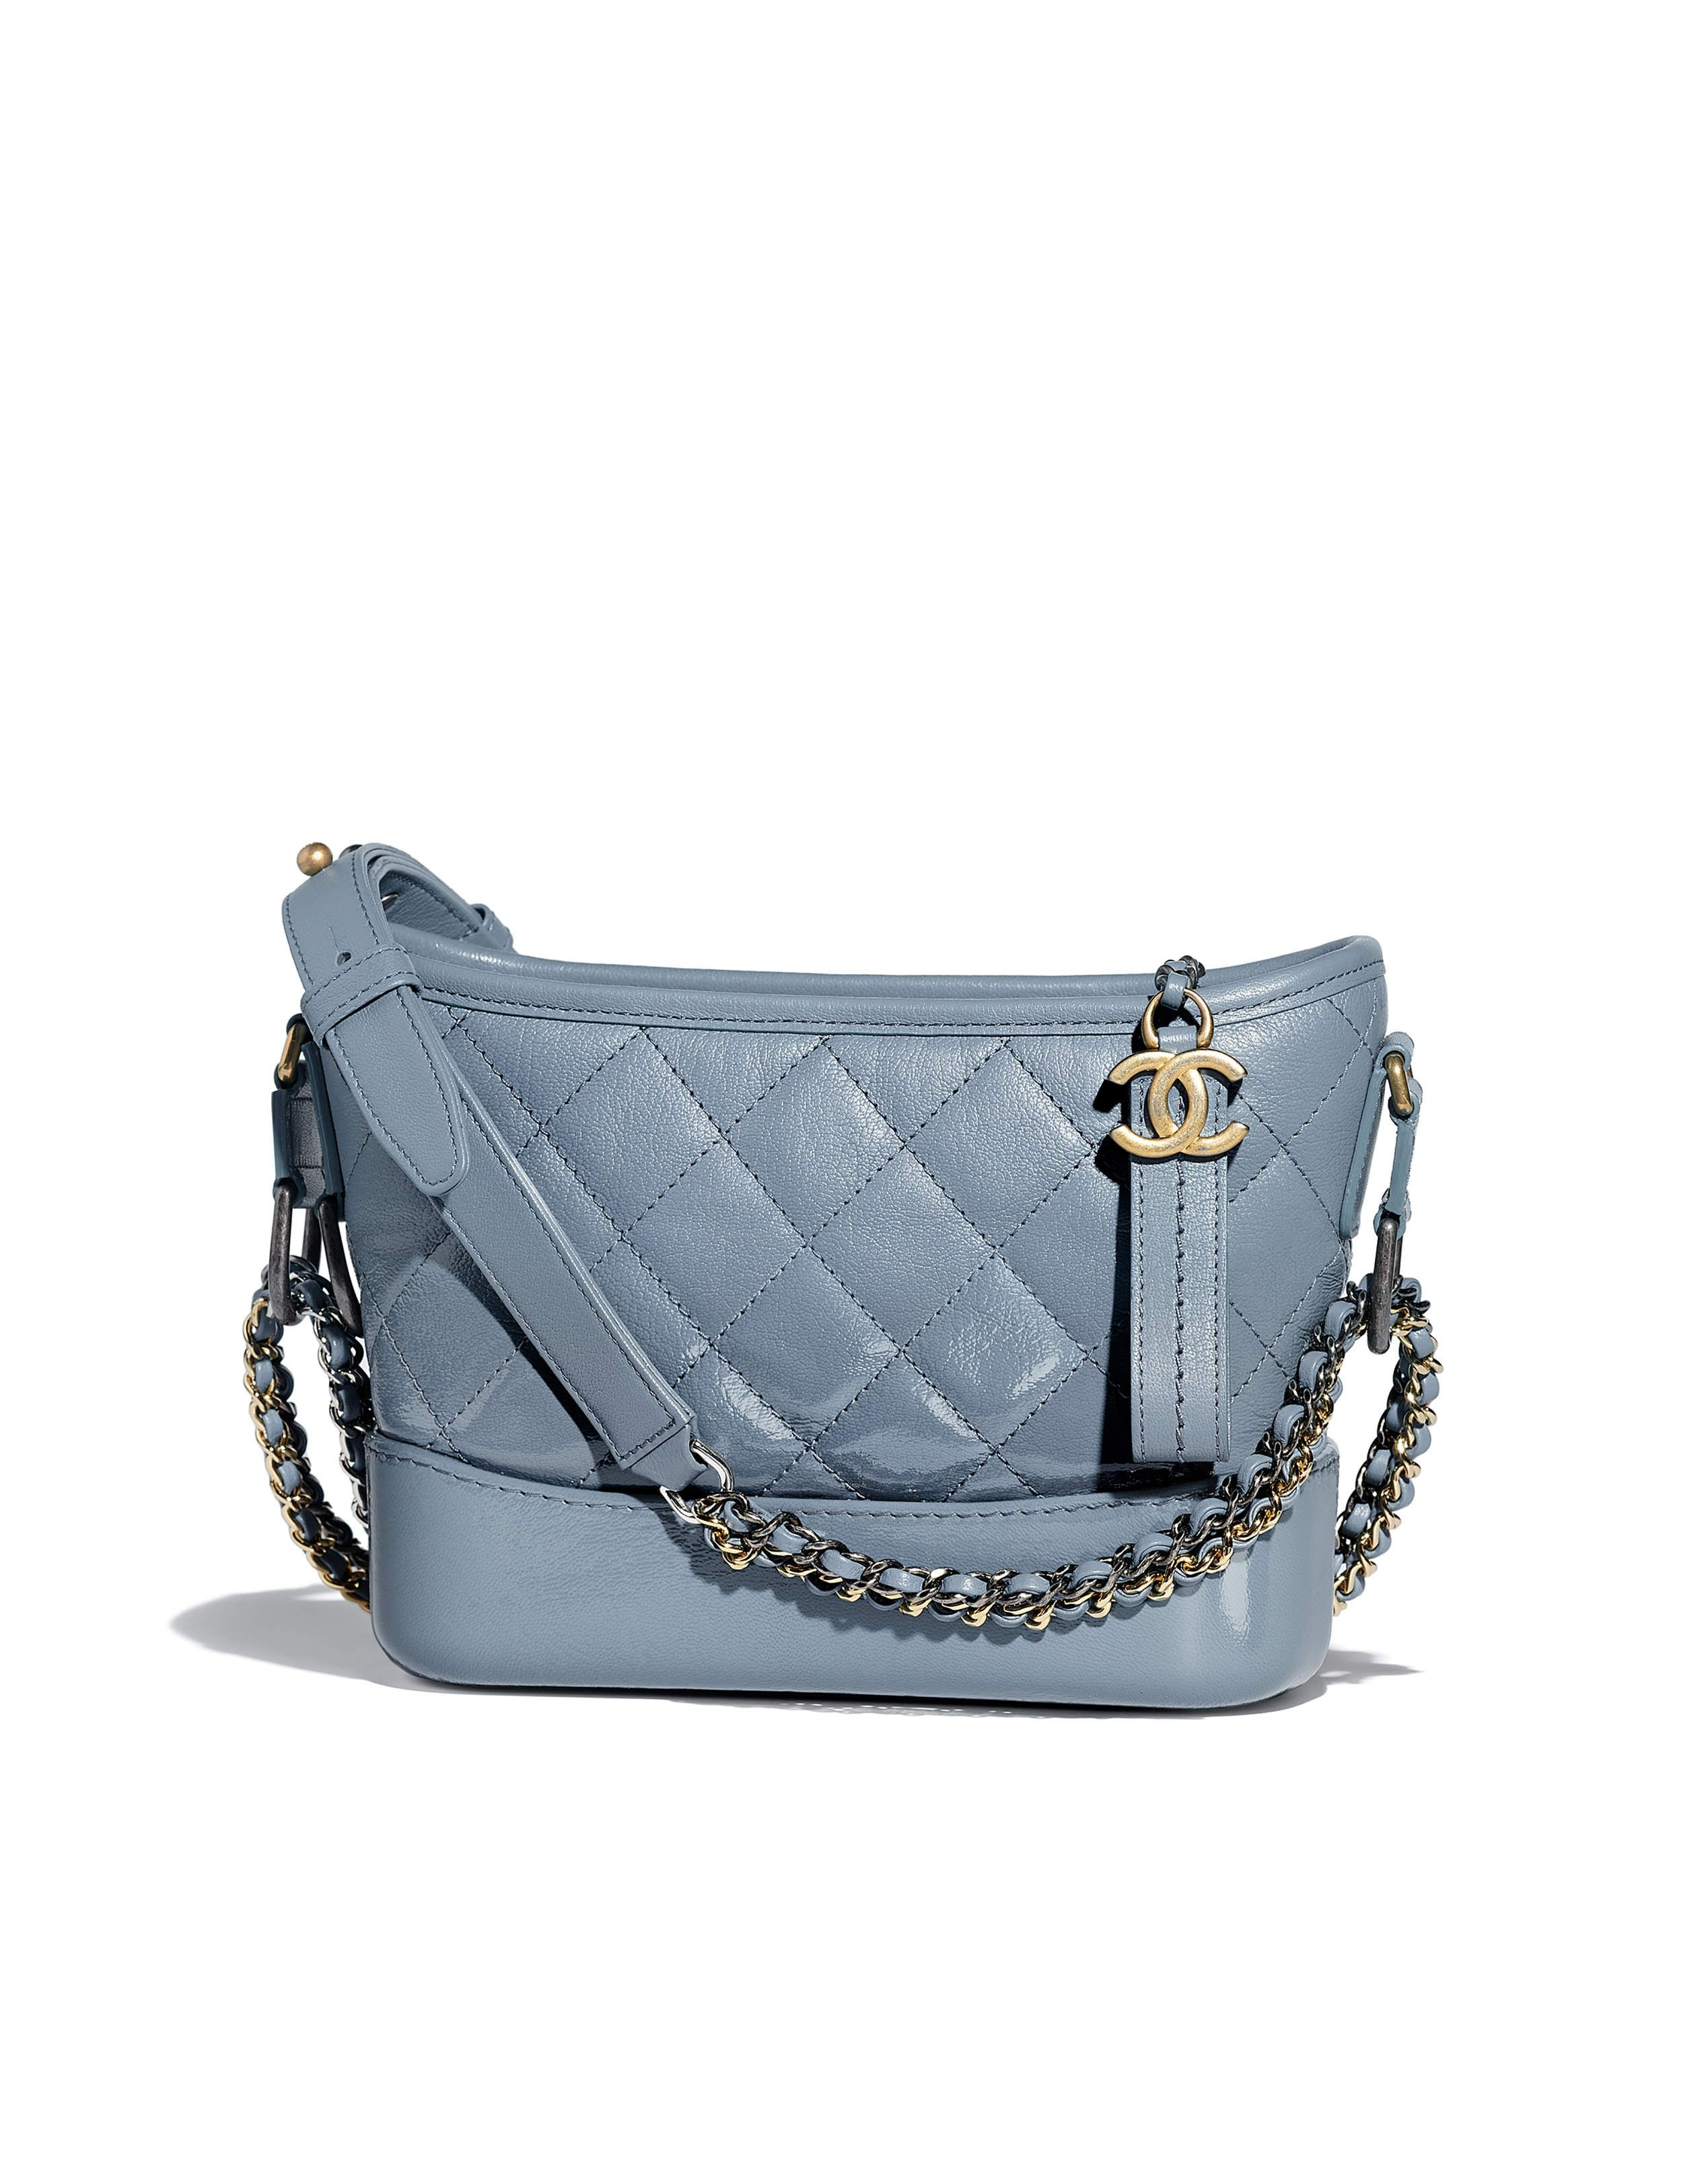 7074e88342a Chanel - SS2018 | Blue Chanel's Gabrielle small Hobo bag | BAGS ...